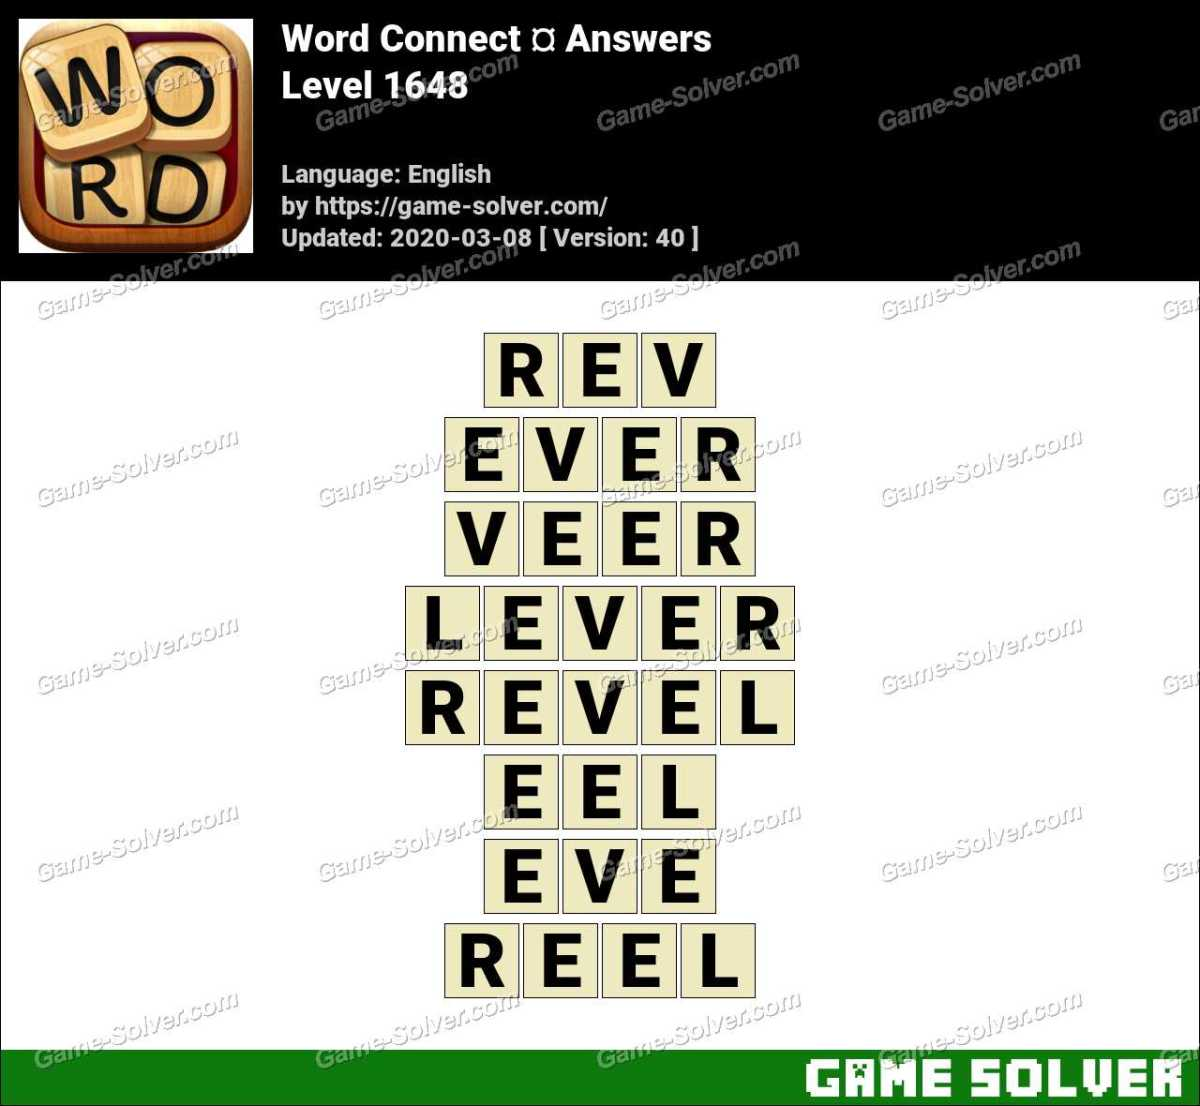 Word Connect Level 1648 Answers